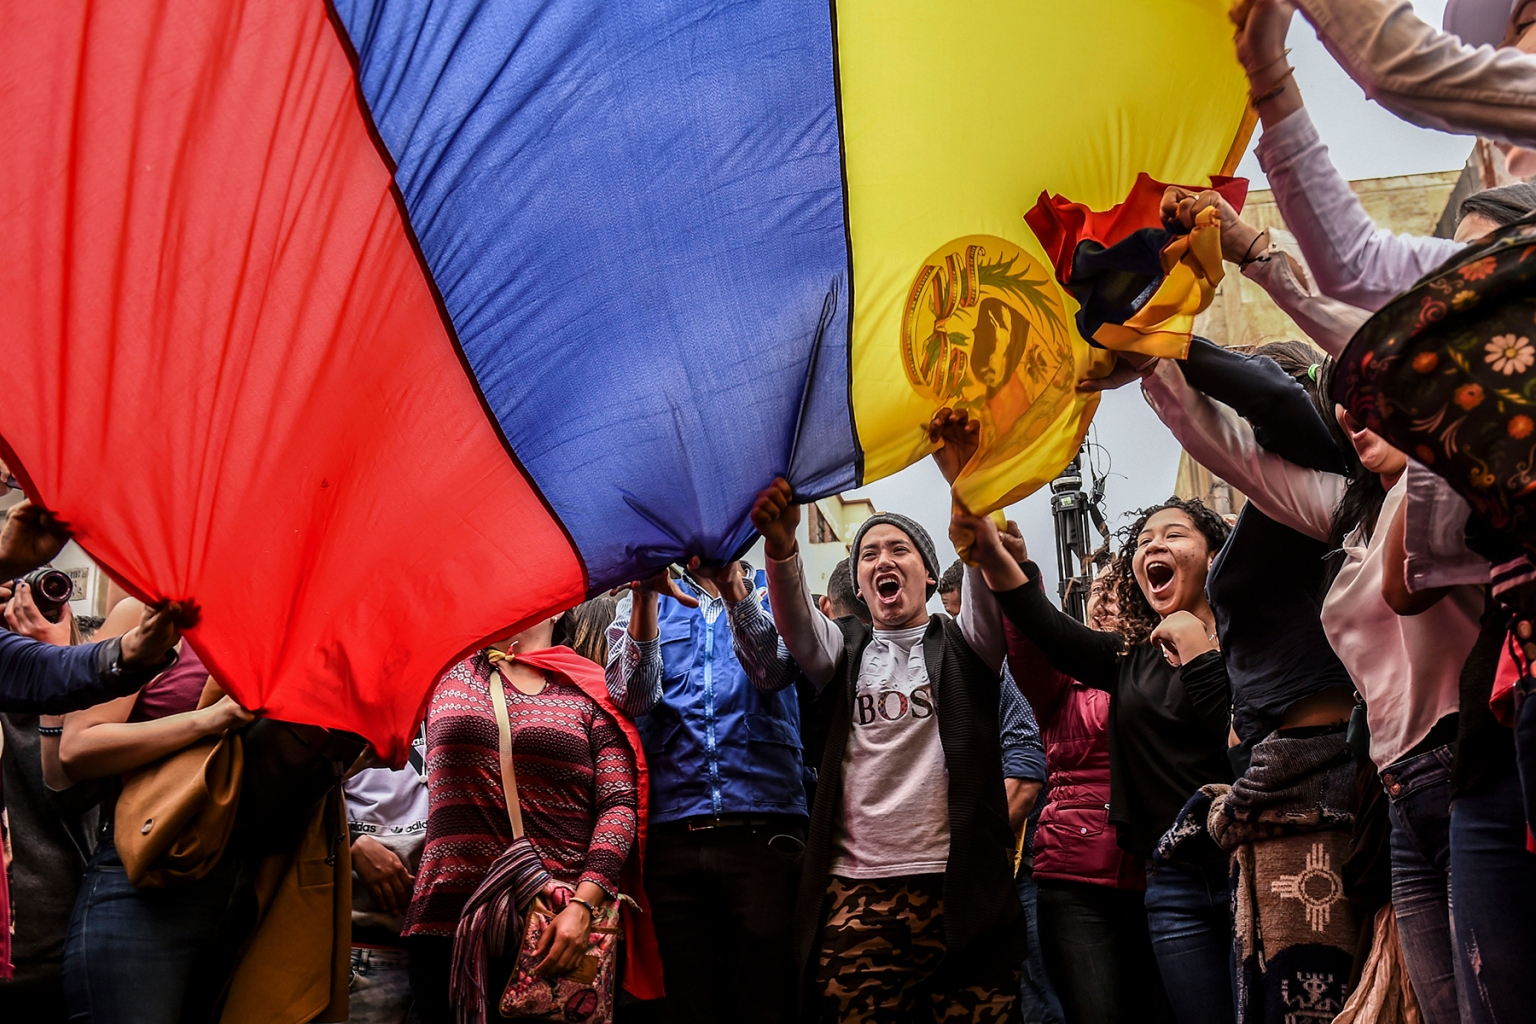 Supporters of Venezuelan opposition leader and self-declared acting president Juan Guaidó shout slogans during a demonstration outside Colombia's Foreign Ministry in Bogota, where Guaidó met with members of a multinational support group to tackle next steps in the country's crisis on Feb. 25. JOAQUIN SARMIENTO/AFP/Getty Images